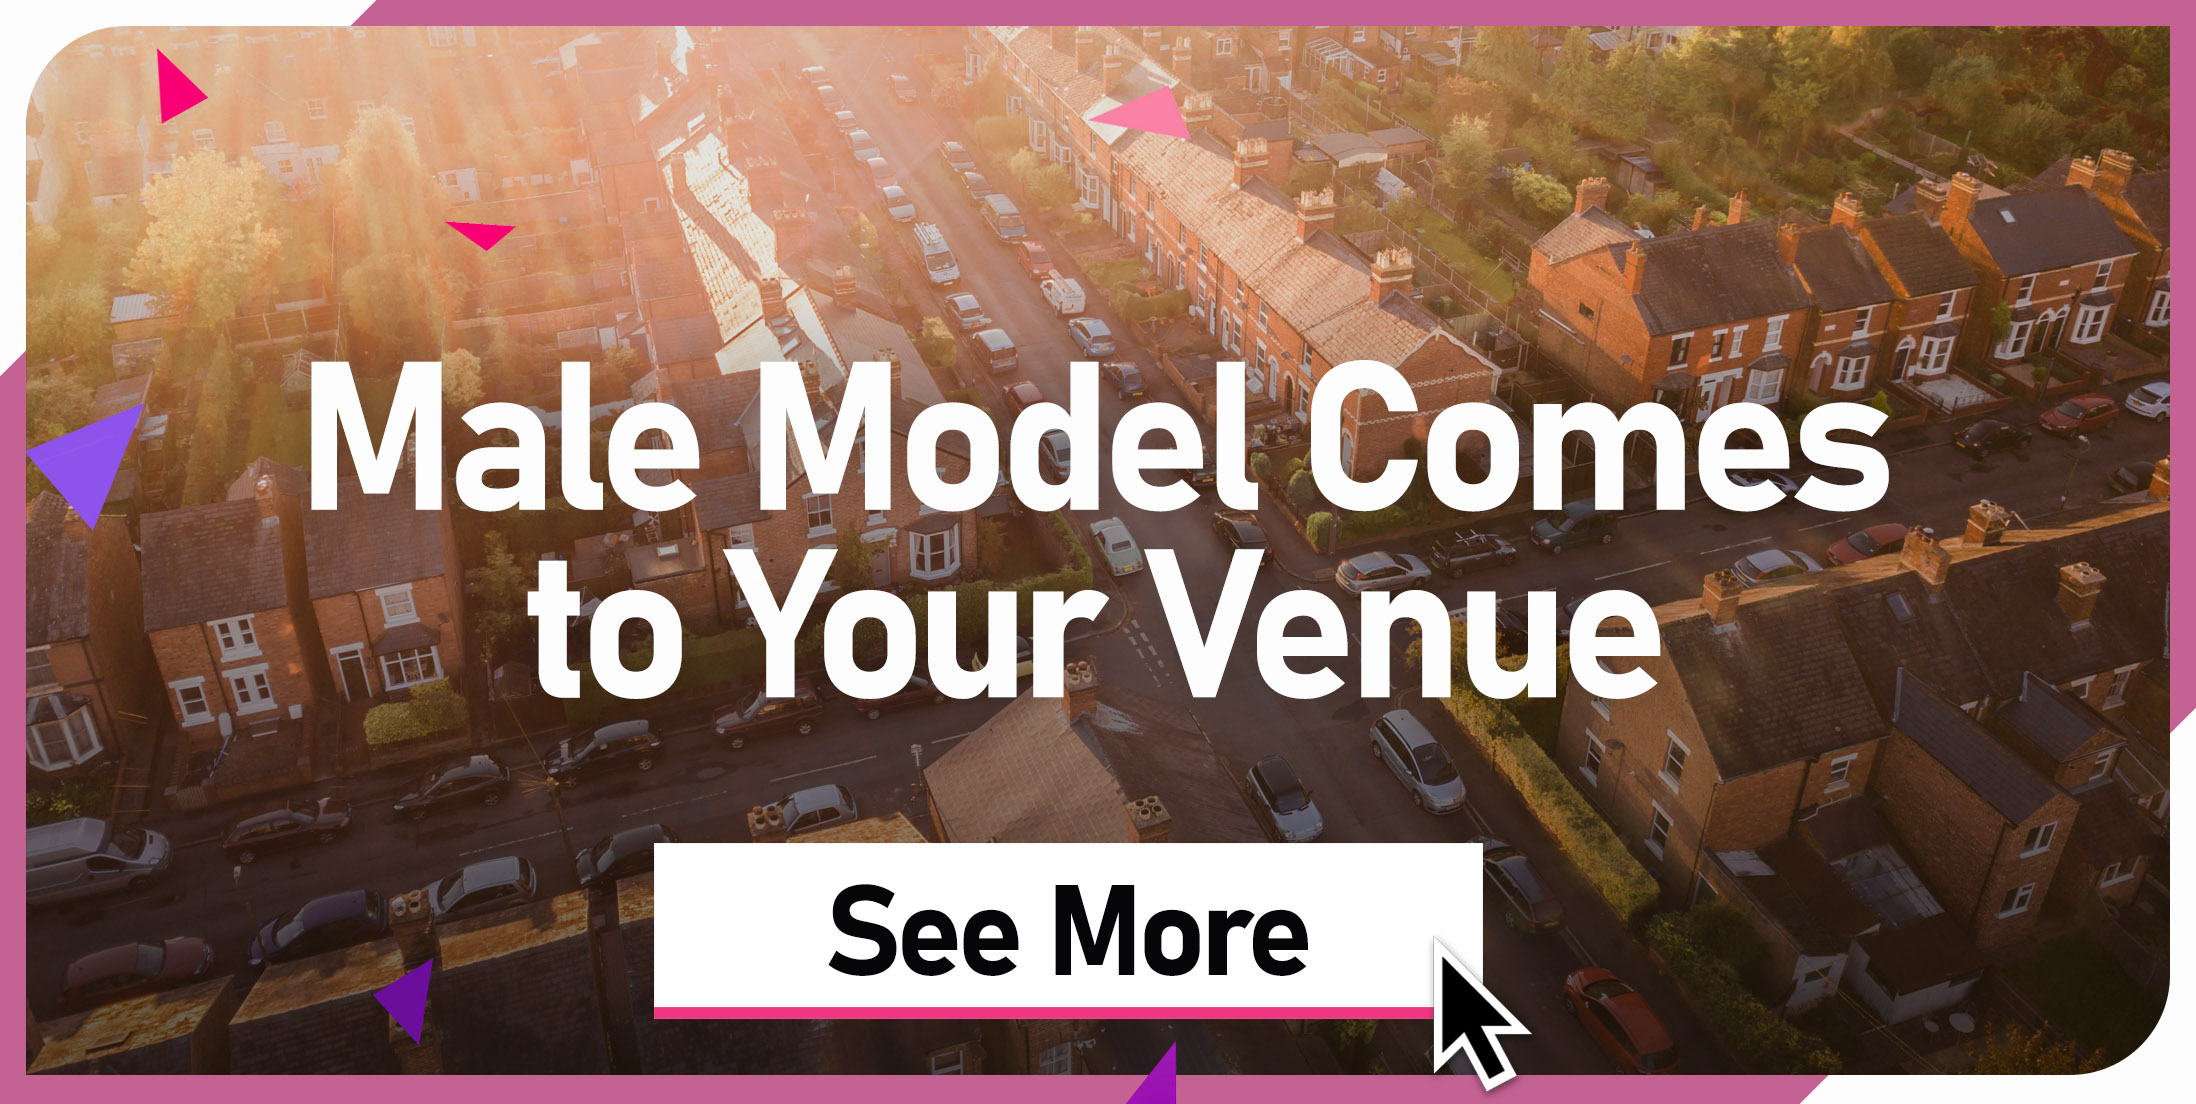 Male Model Comes to Your Venue